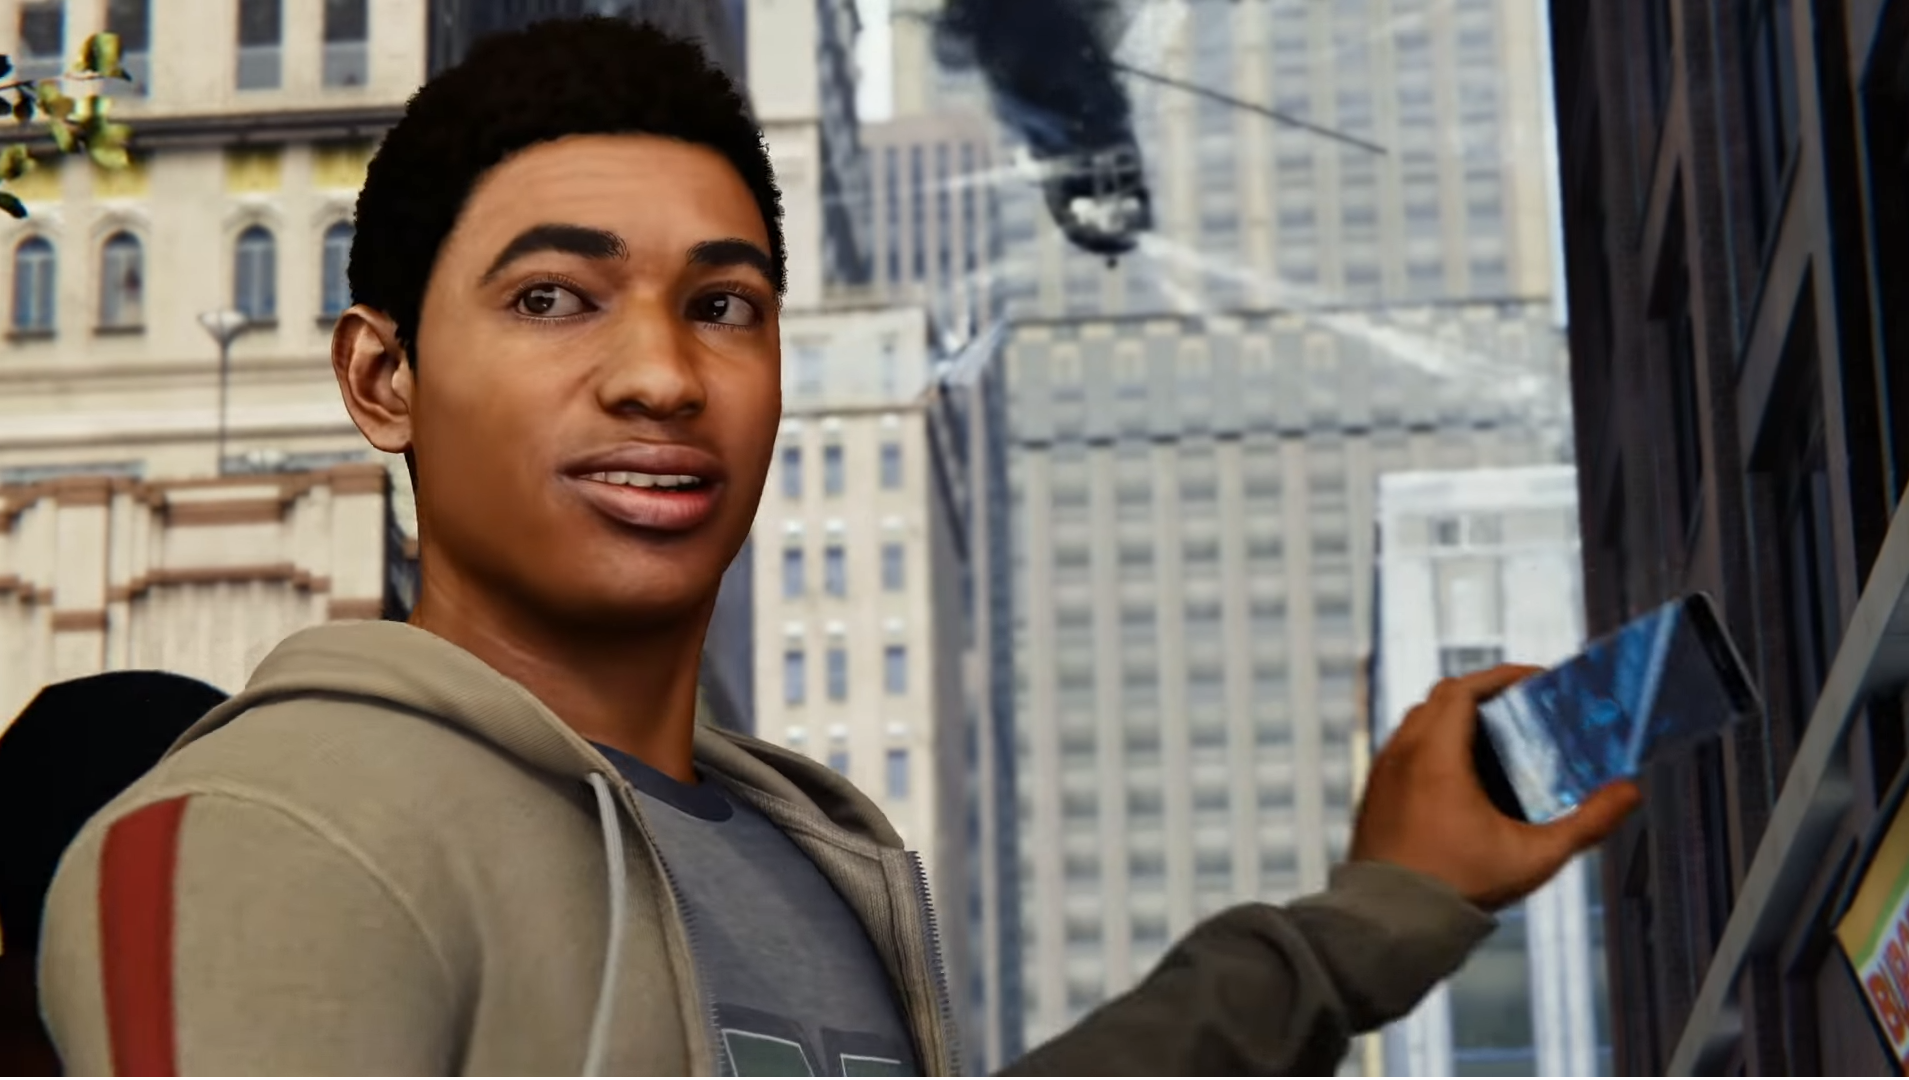 Spider Man PS4: Can You Play as Miles Morales? | USgamer